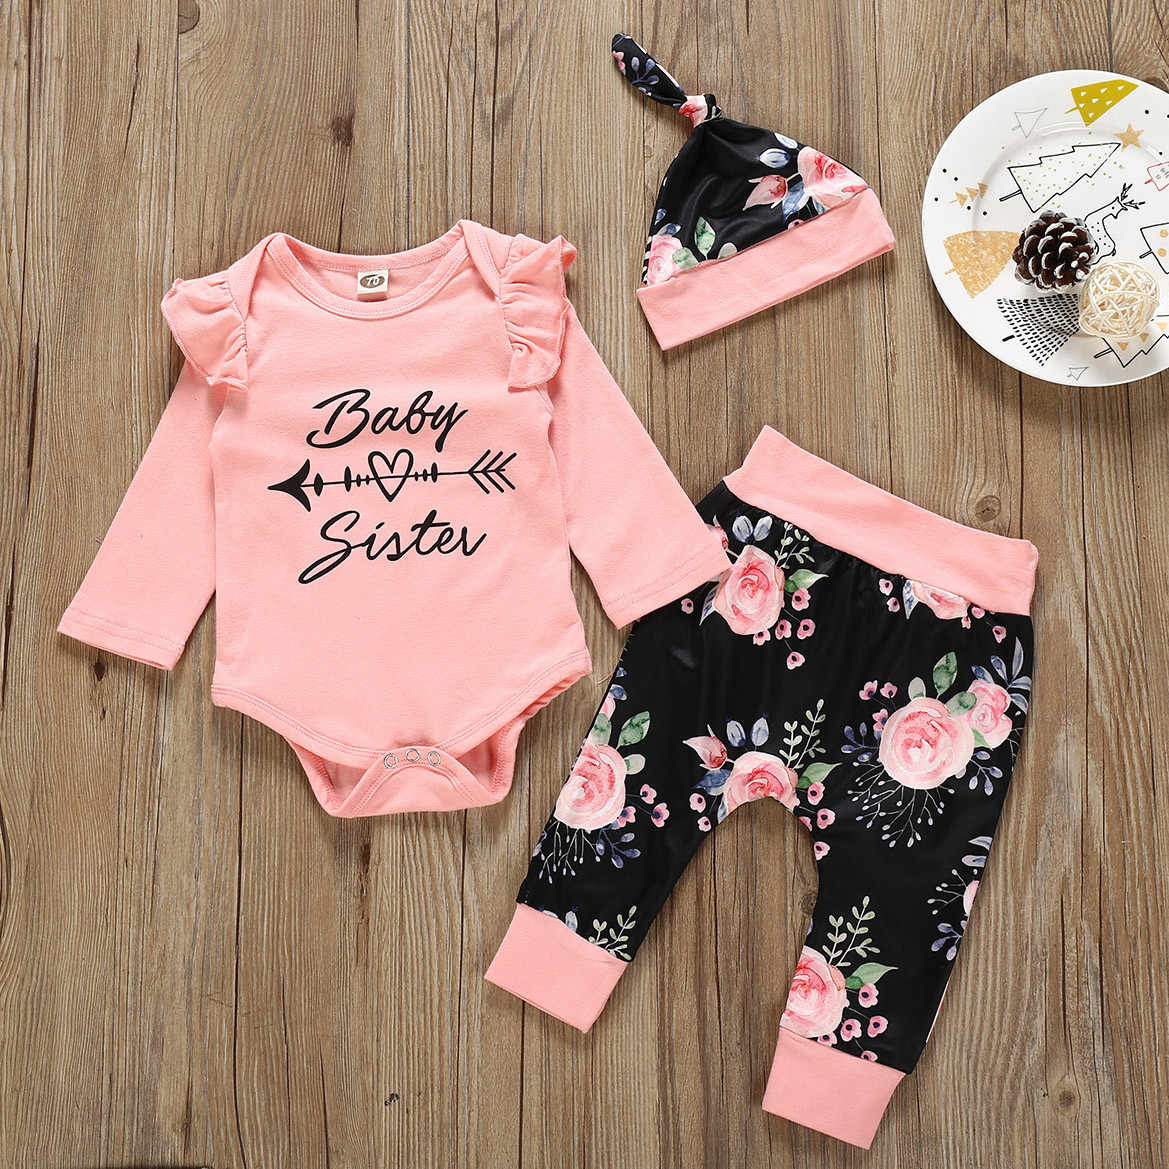 Newborn Baby Girl Clothes Infant Baby Girl Sets Letter Romper+Flower Pants+Cap Newborn Baby Girl Outfits Ensemble Bebe Fille